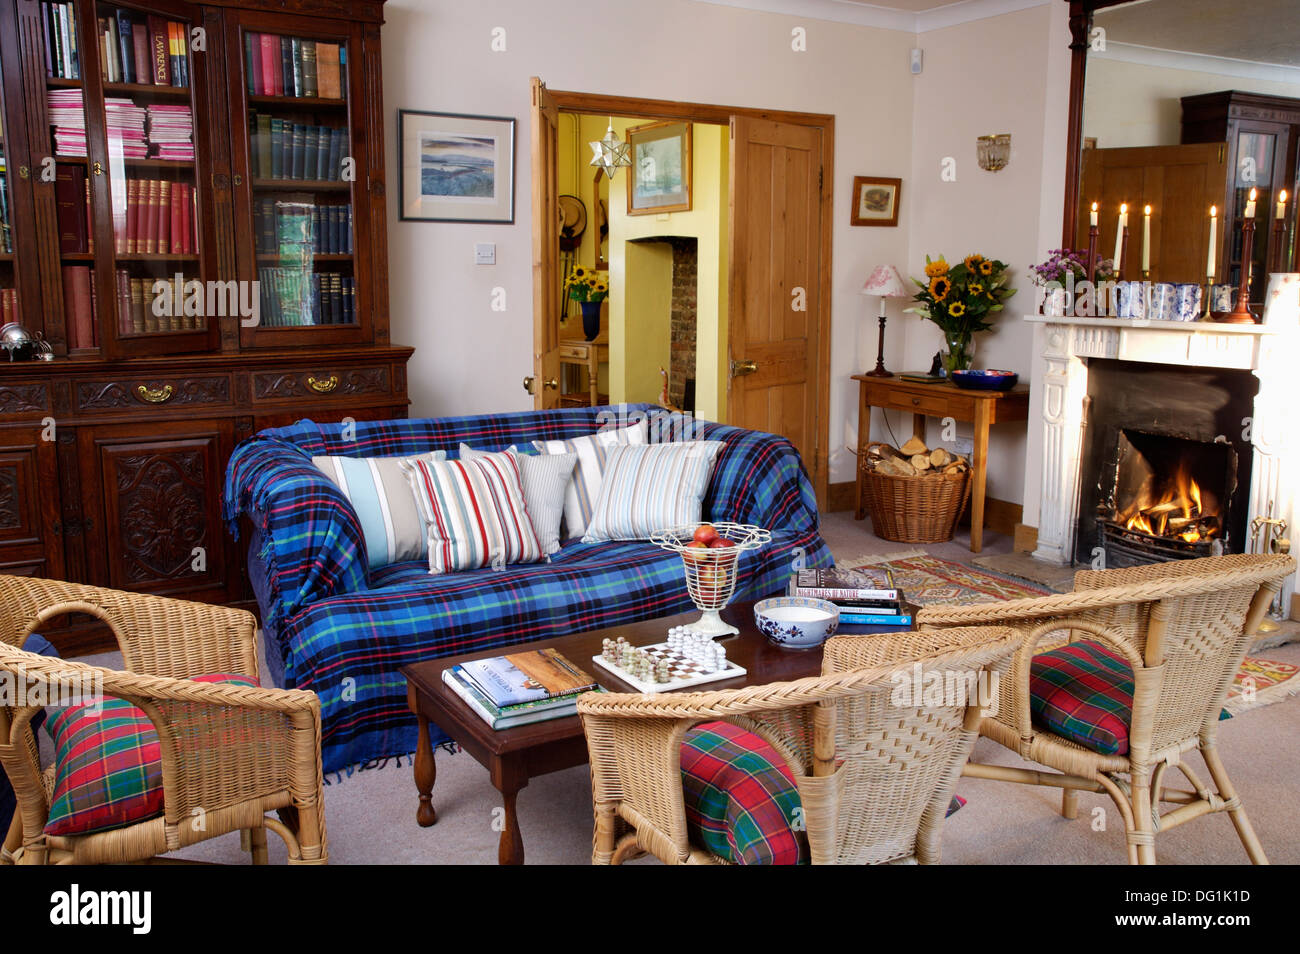 Blue plaid throw on sofa with wicker chairs in country ...